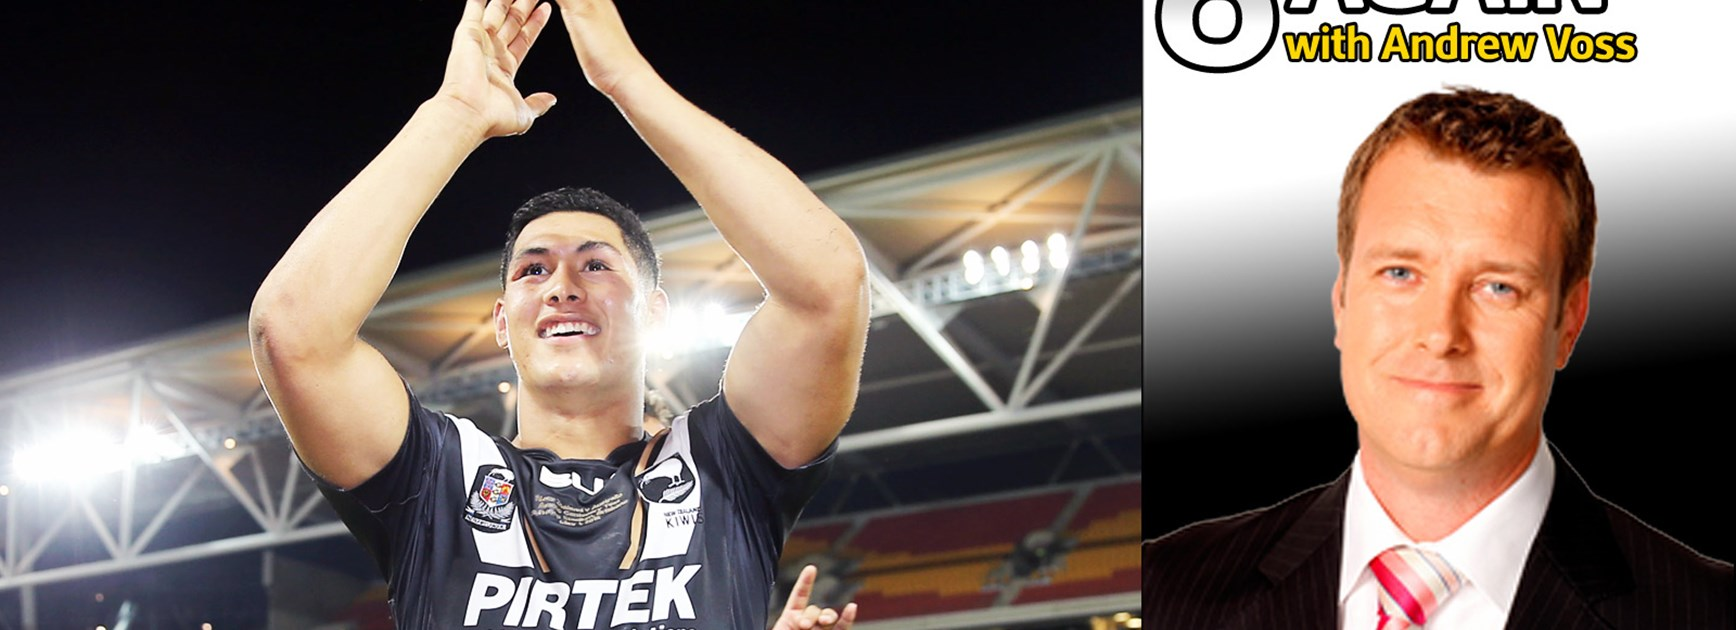 Andrew Voss is predicting big things from Kiwis fullback Roger Tuivasa-Sheck at the Rugby League World Cup.